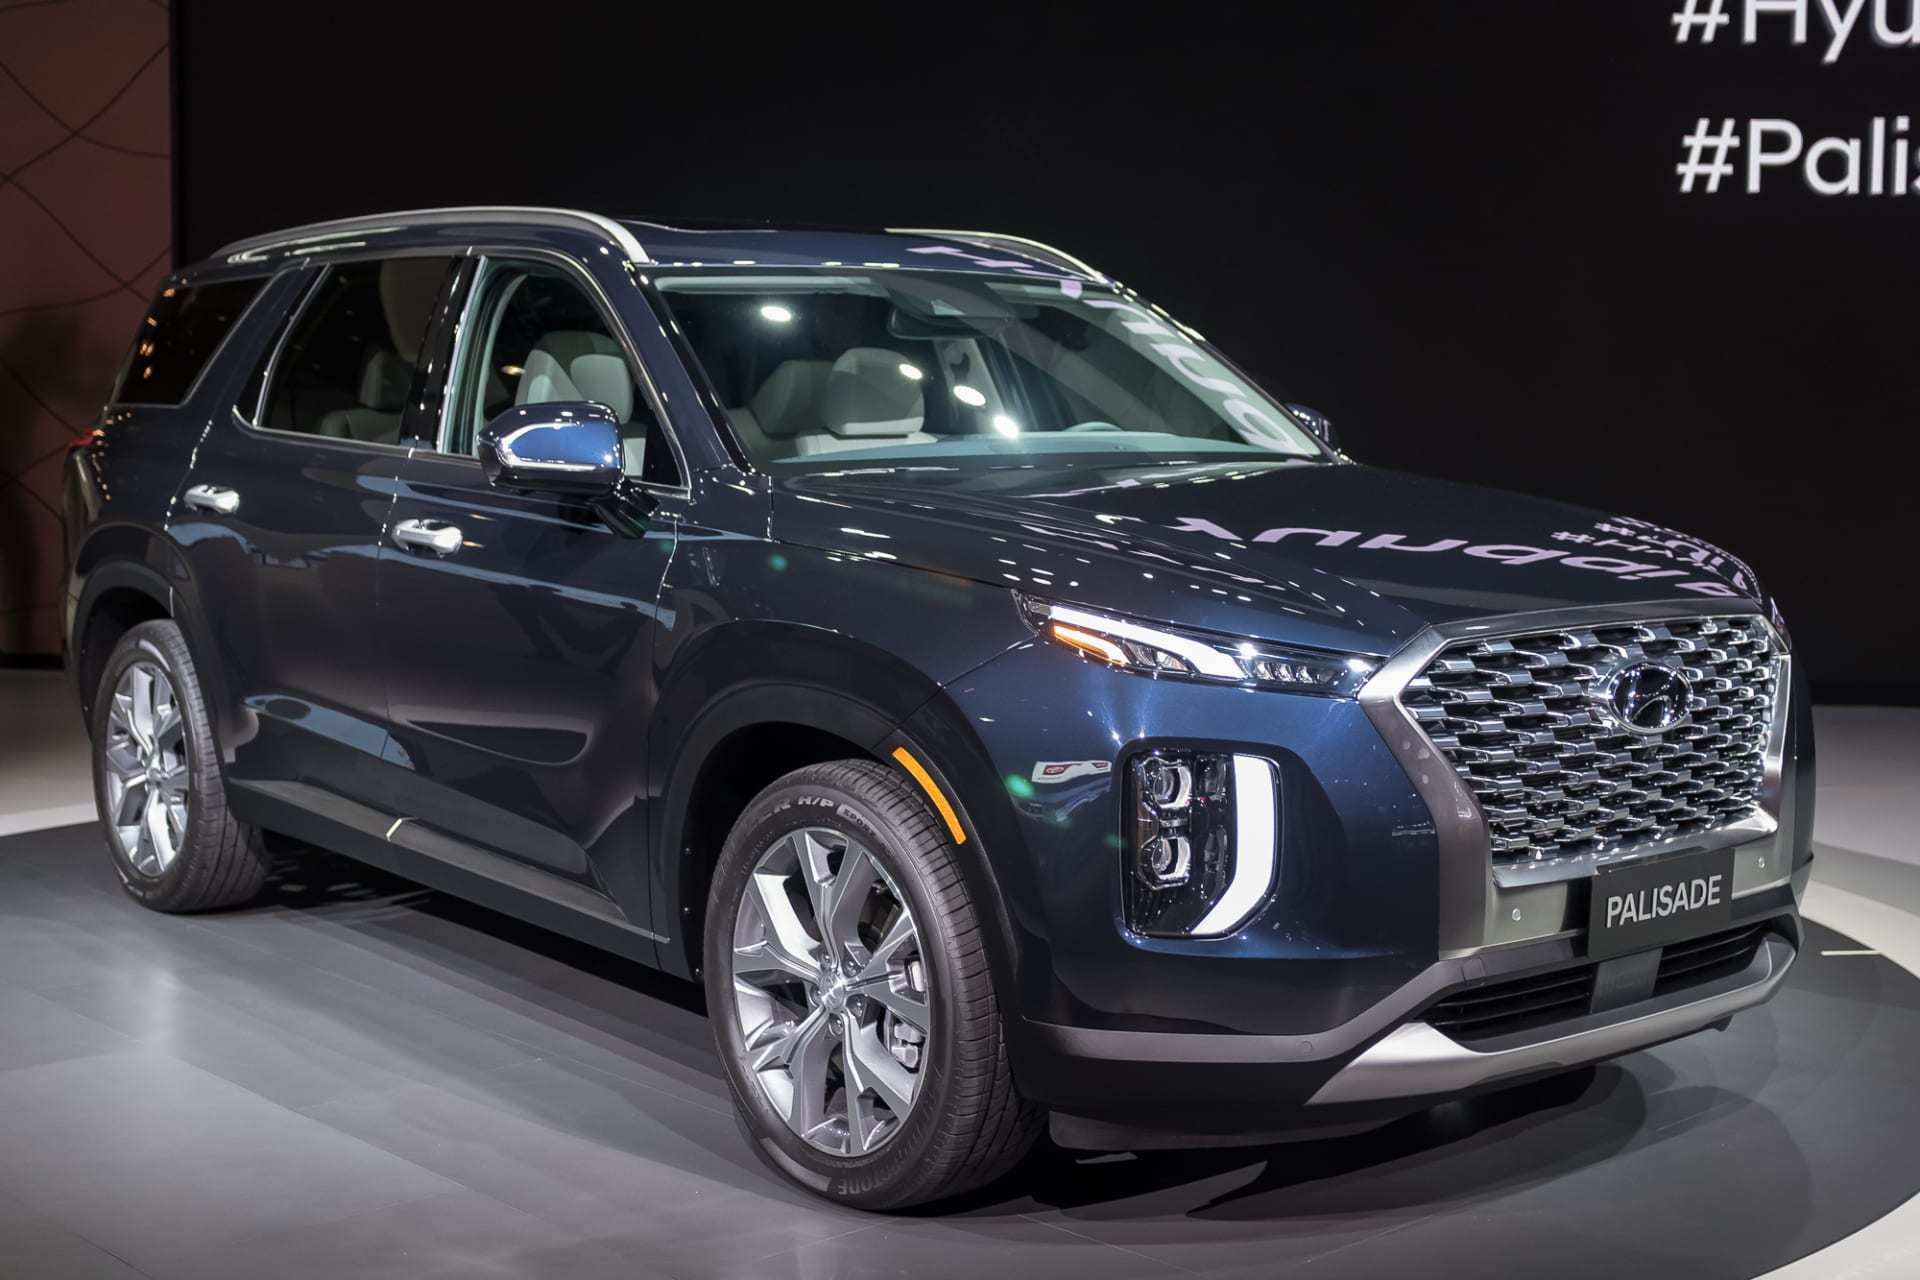 77 Gallery of Hyundai Large Suv 2020 Ratings with Hyundai Large Suv 2020